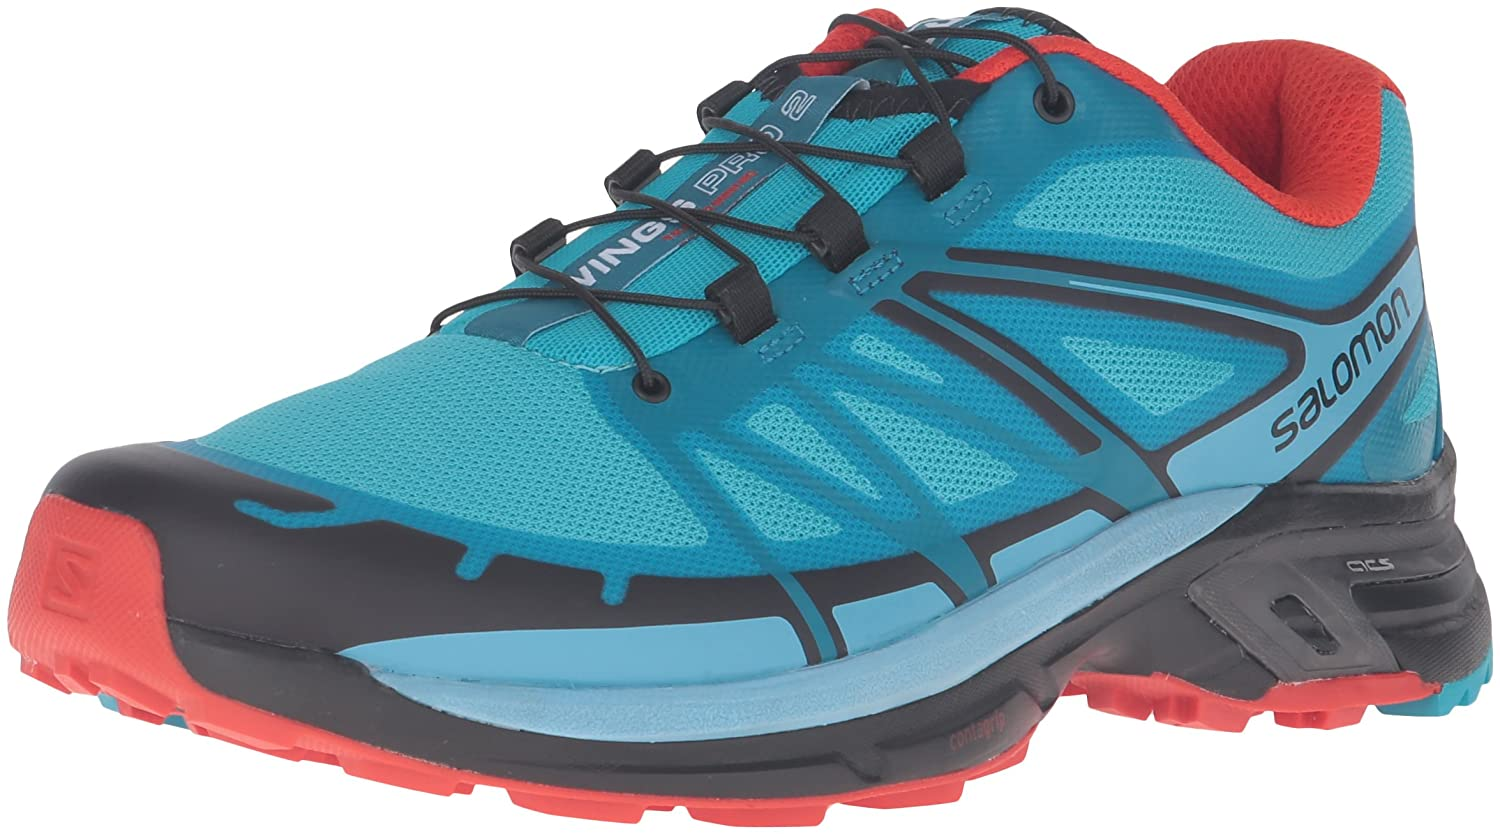 Salomon Wings Pro 2 Women's Shoes SangriaBlackWhite